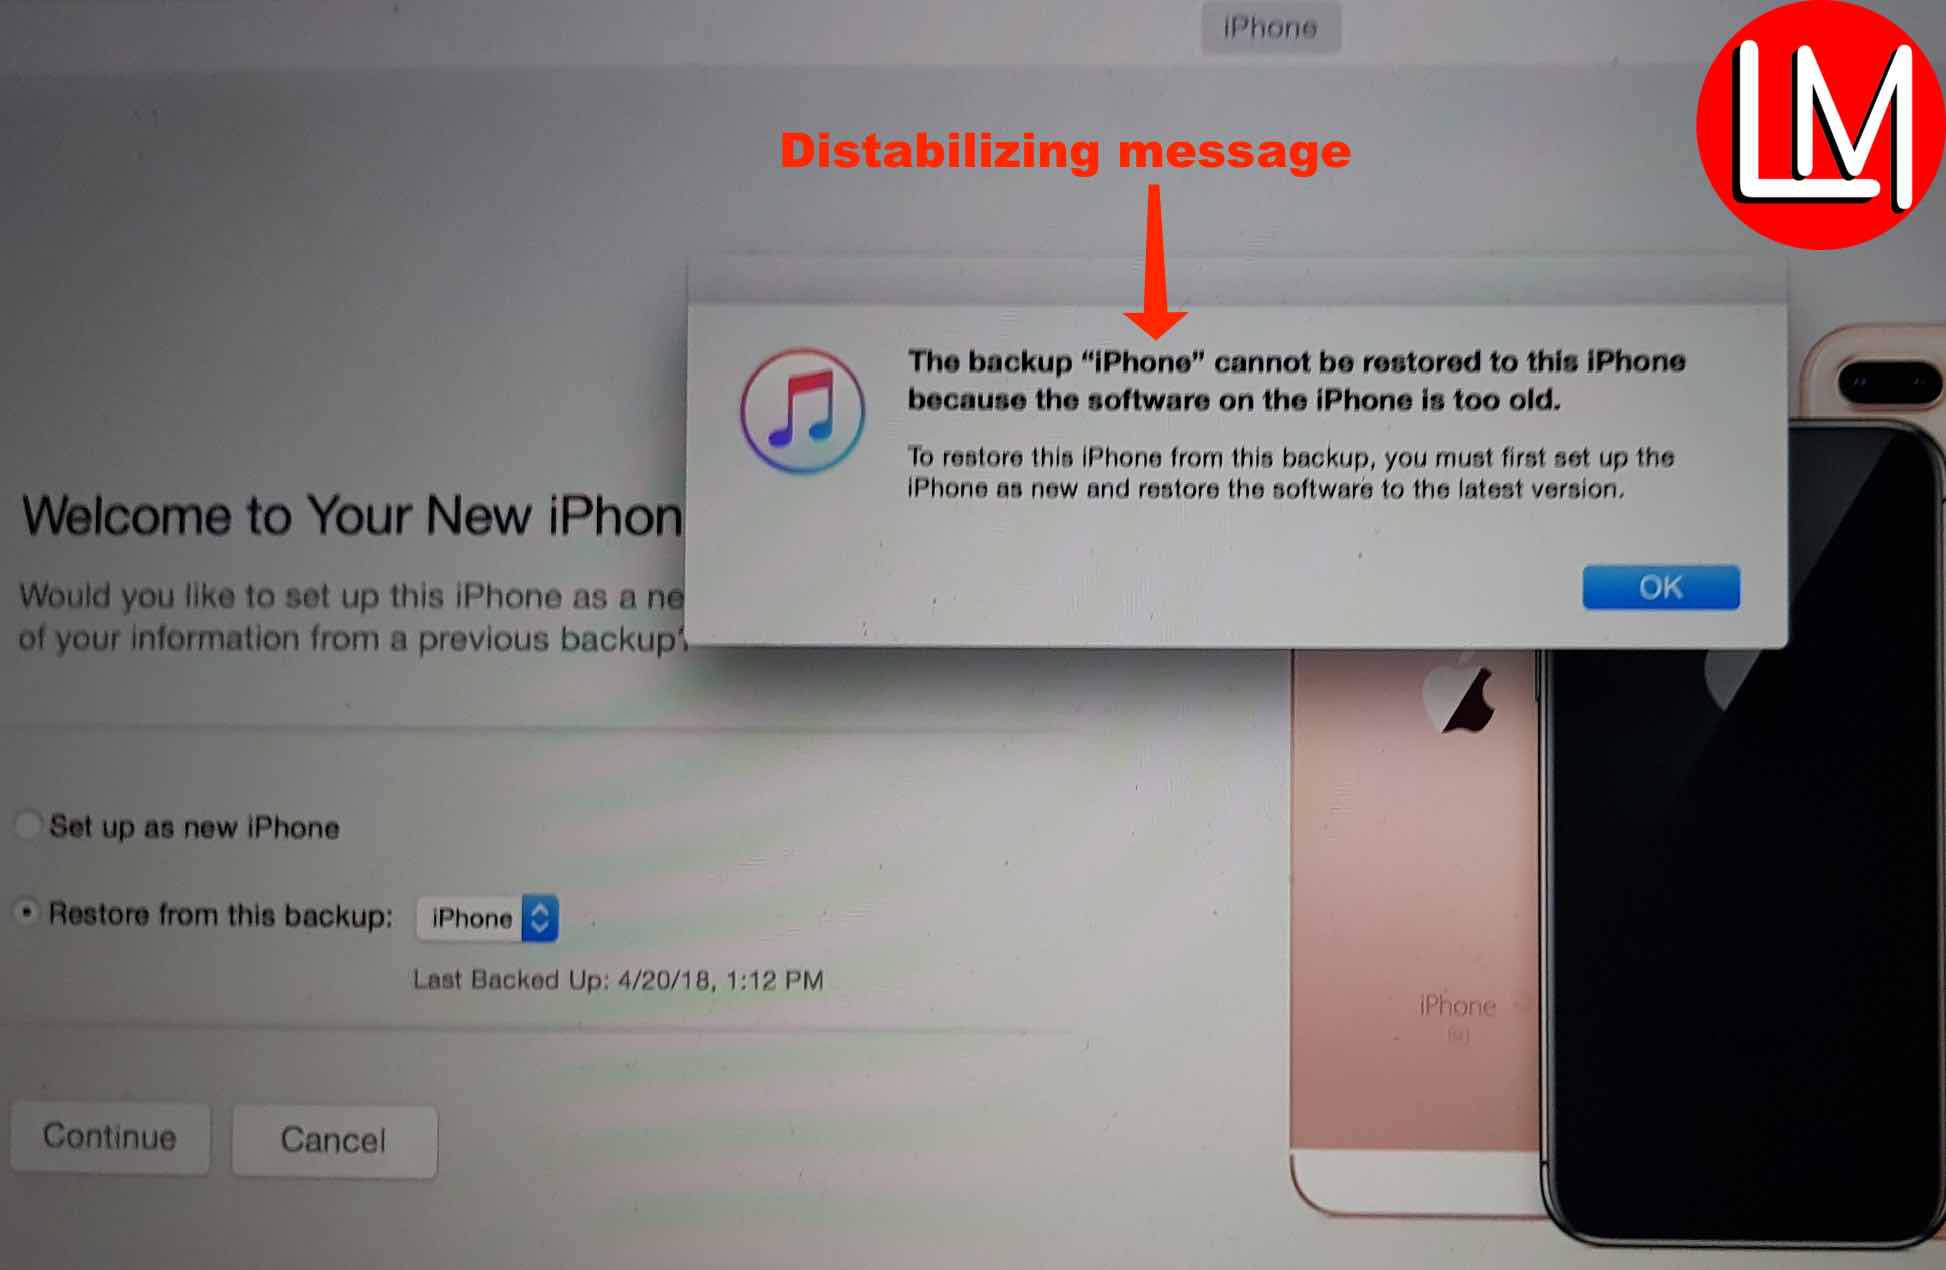 solve the backup iPhone cannot be restored to this iPhone